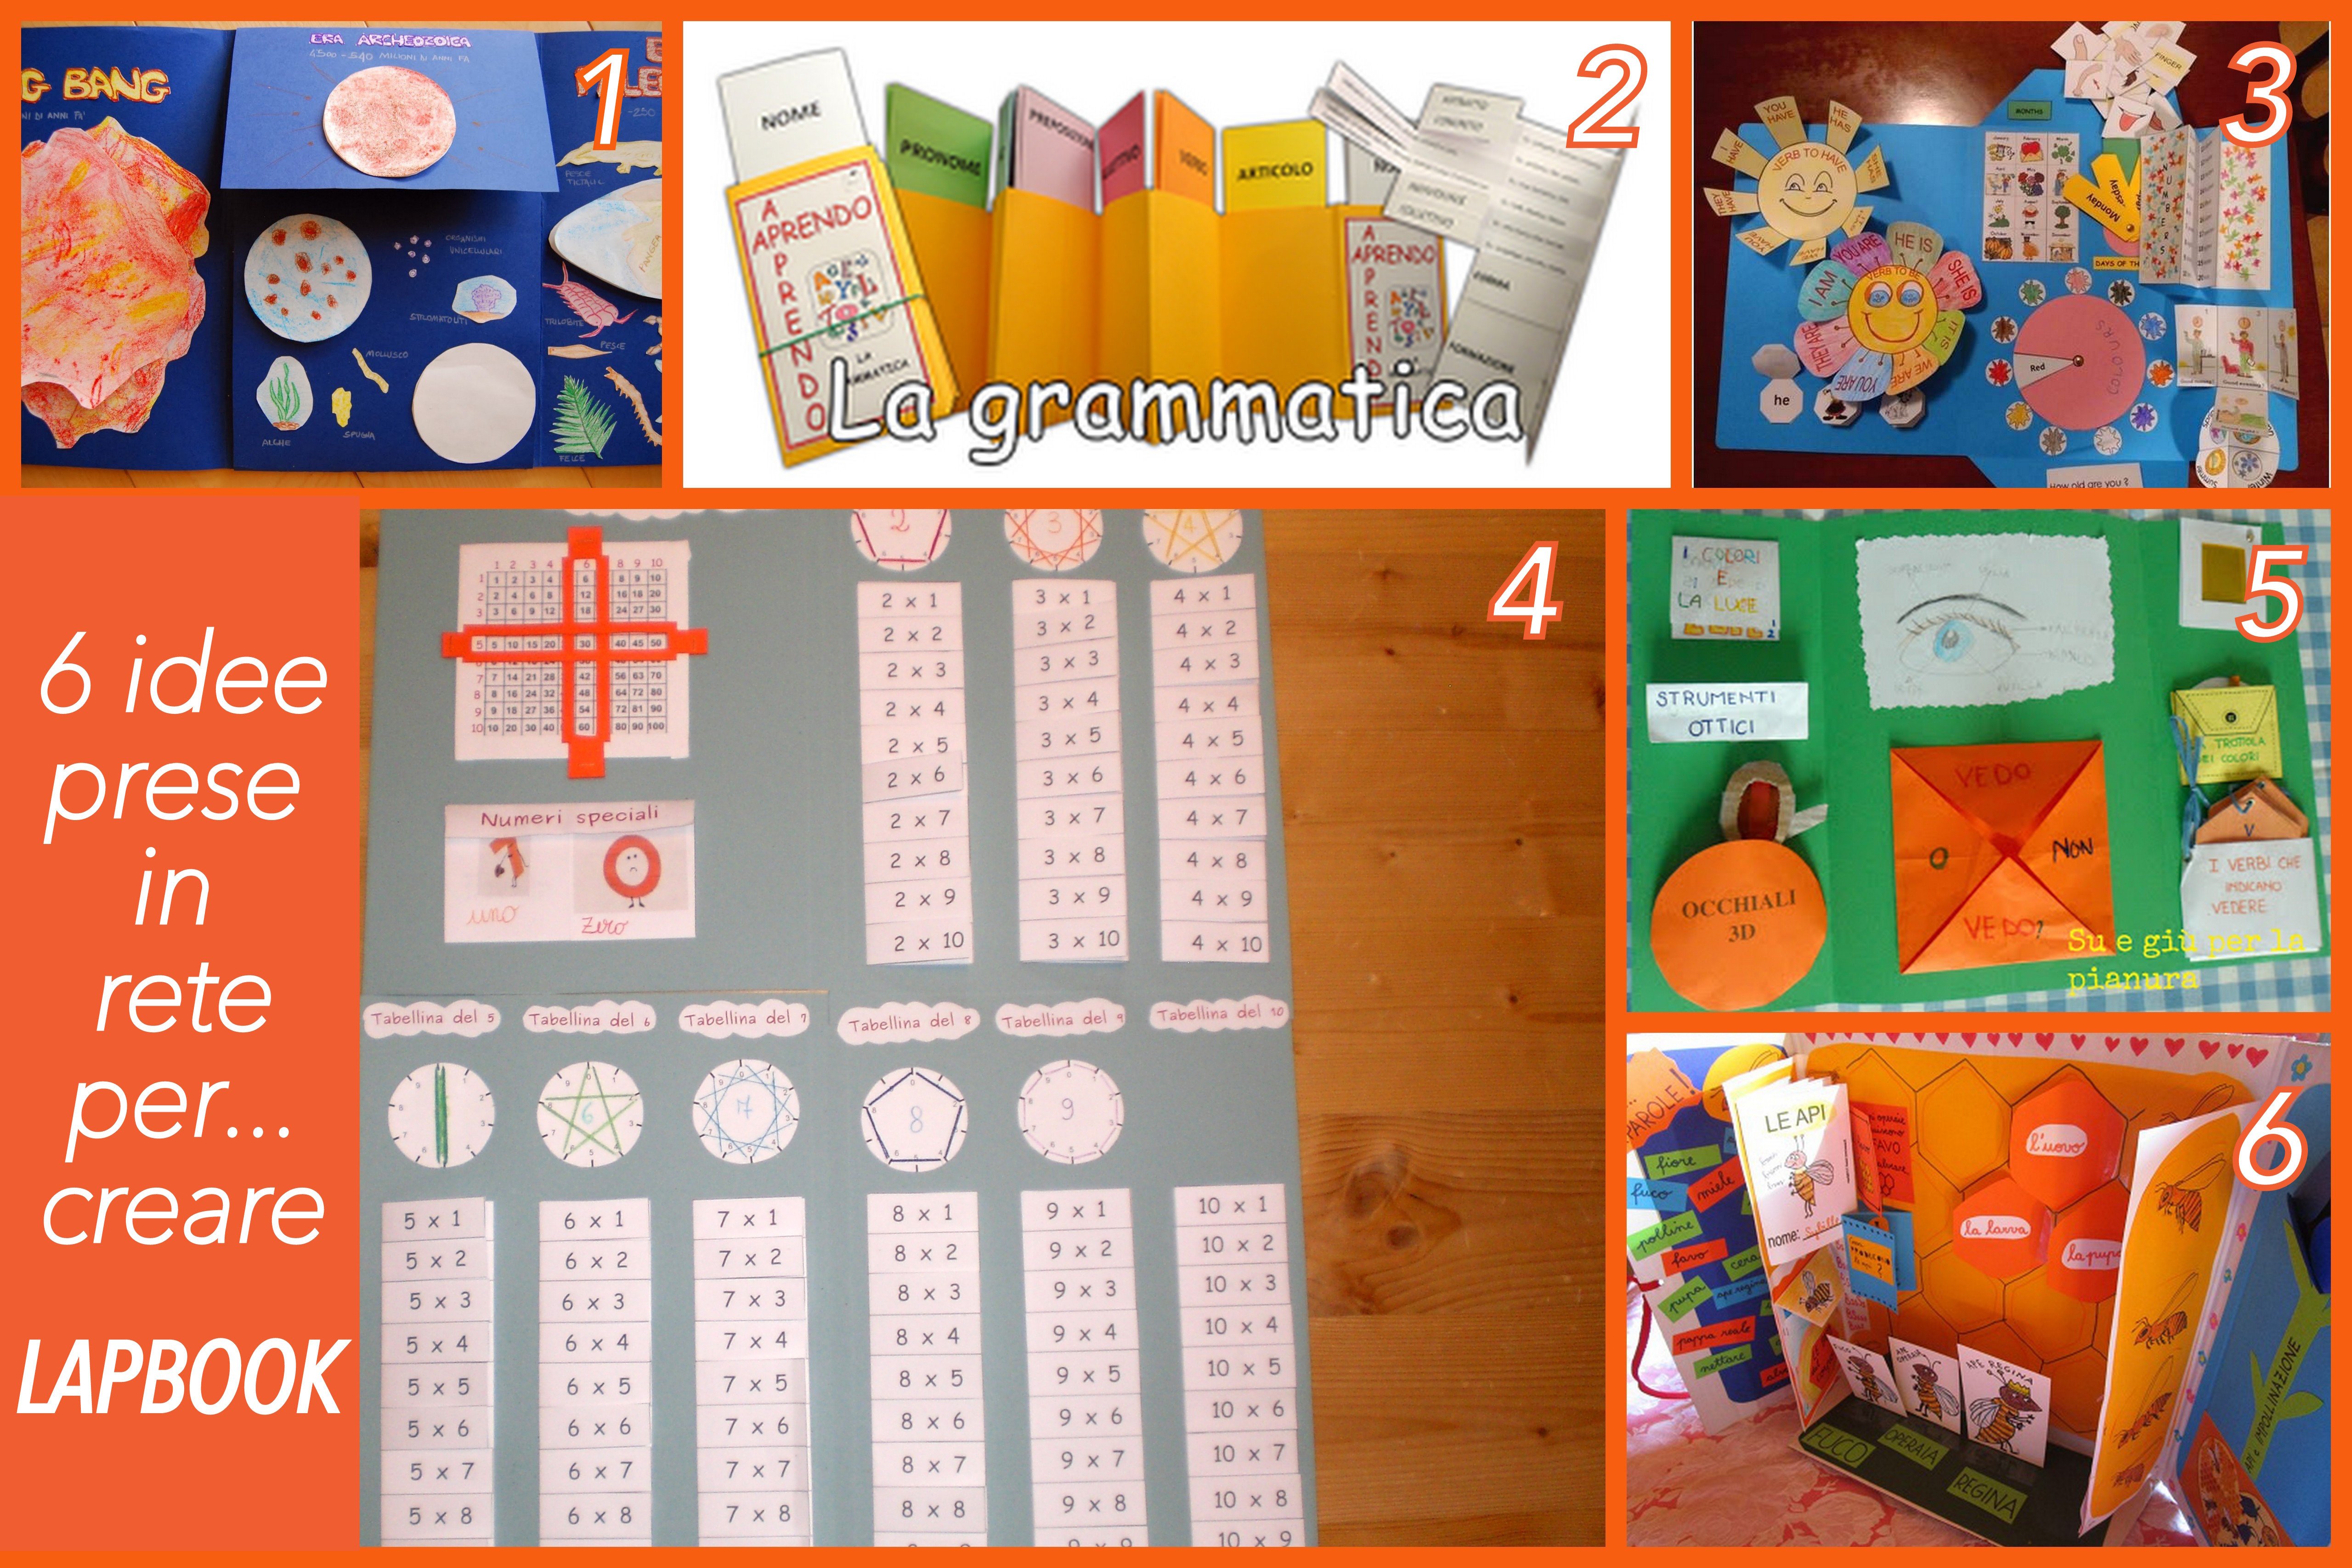 Preferenza 6 idee prese in rete per creare Lapbook | RK25